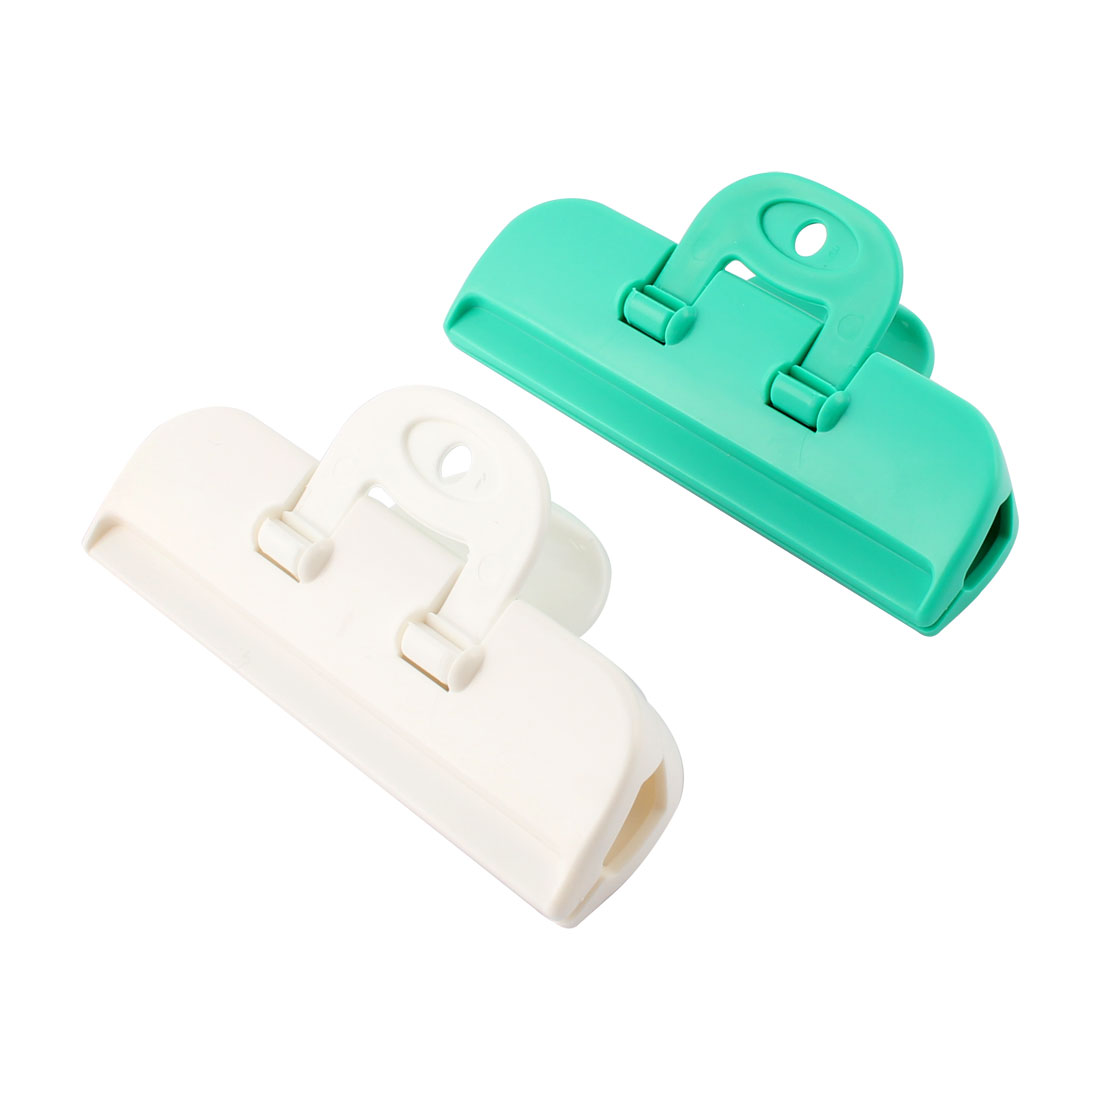 Food Storage Plastic Pocket Bag Sealing Clips Clamps Green White 2 pcs